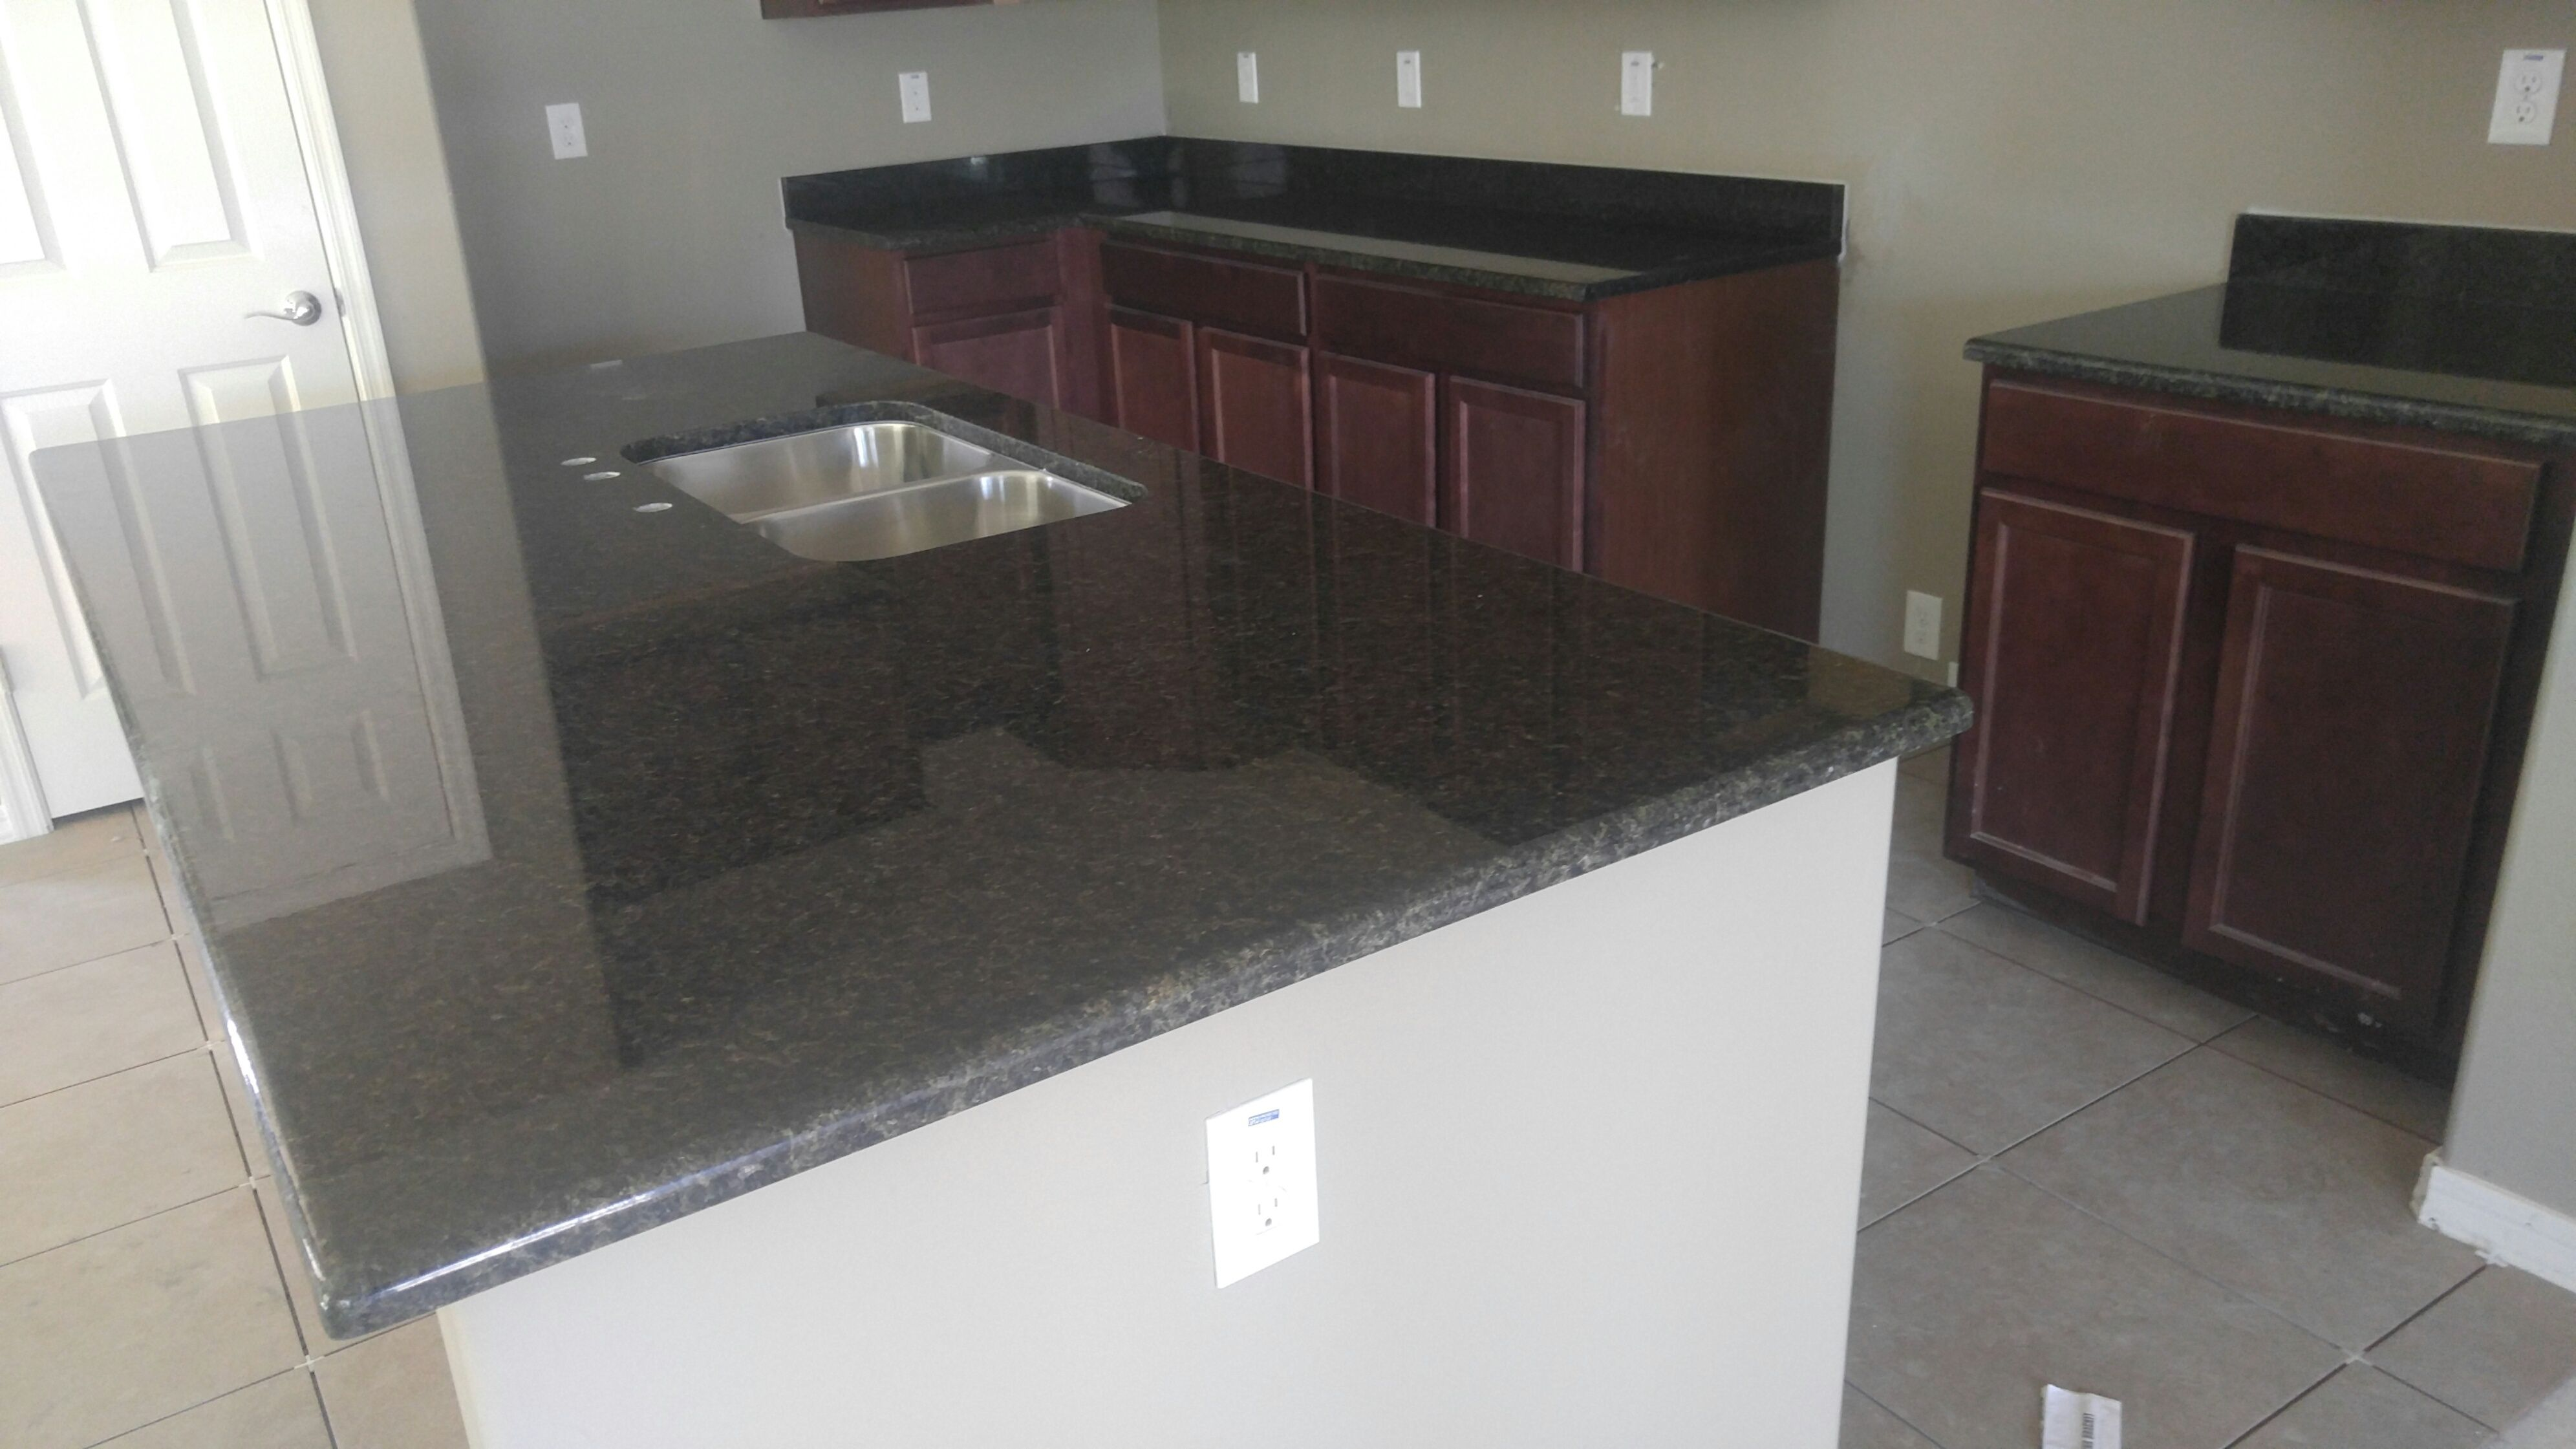 These Countertops Are Verde Uba Tuba Granite. Desert Sky Surfaces Can  Customize Any Type Of Countertop Needed To Complete The Kitchen Or Bathroom  Of Your ...